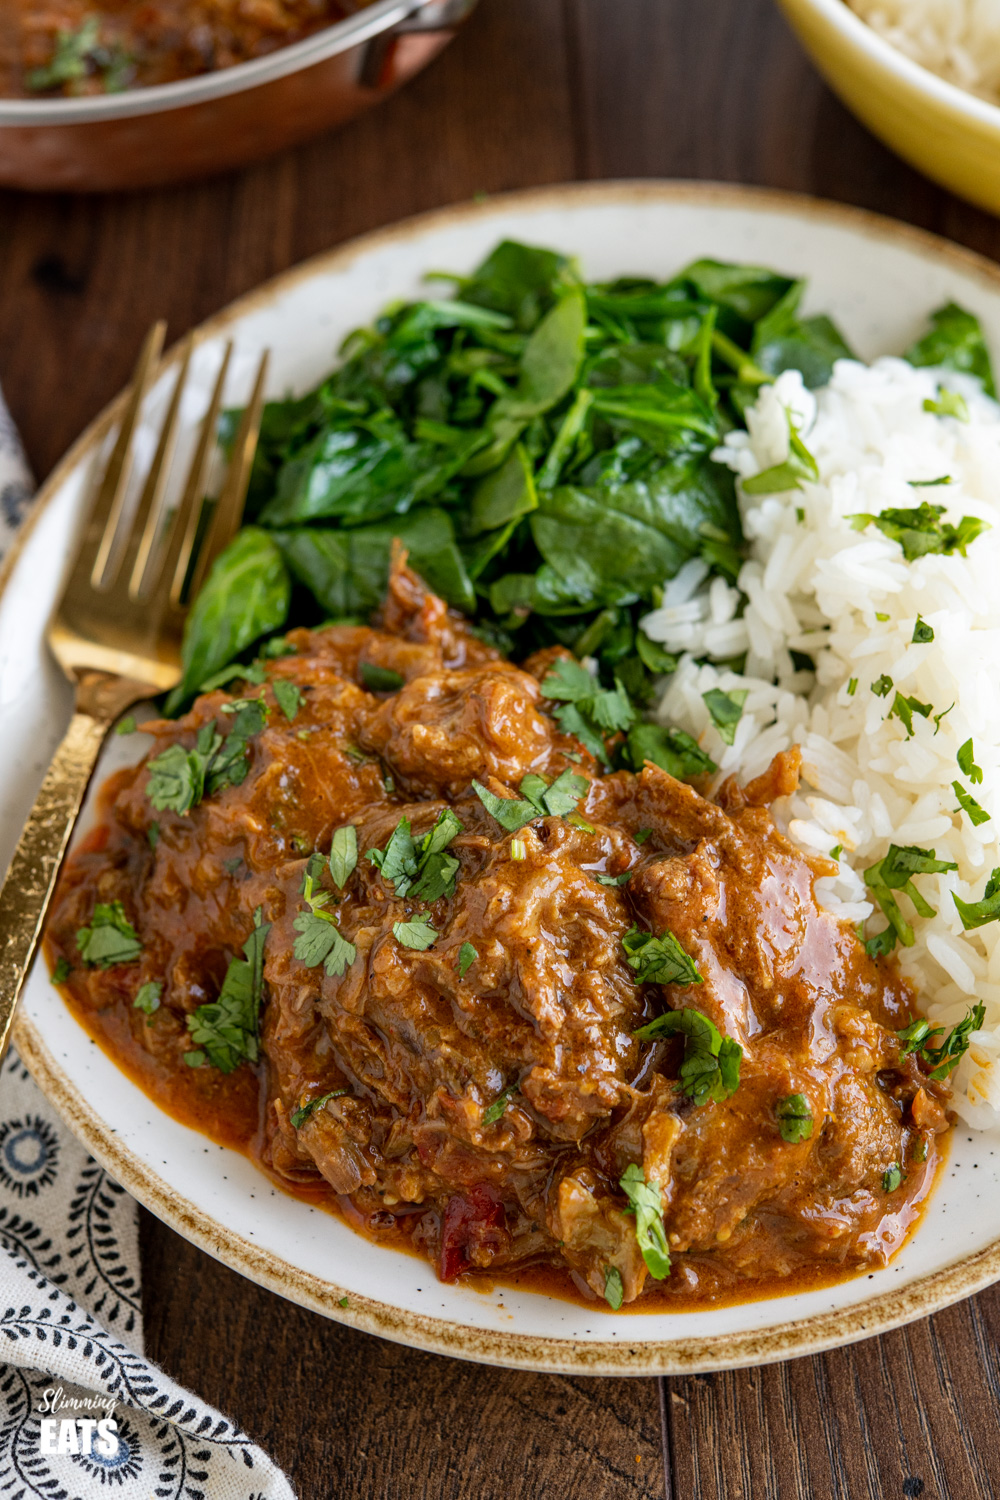 close up of lamb bhuna on beige and white plate with rice, spinach and sprinkled with coriander